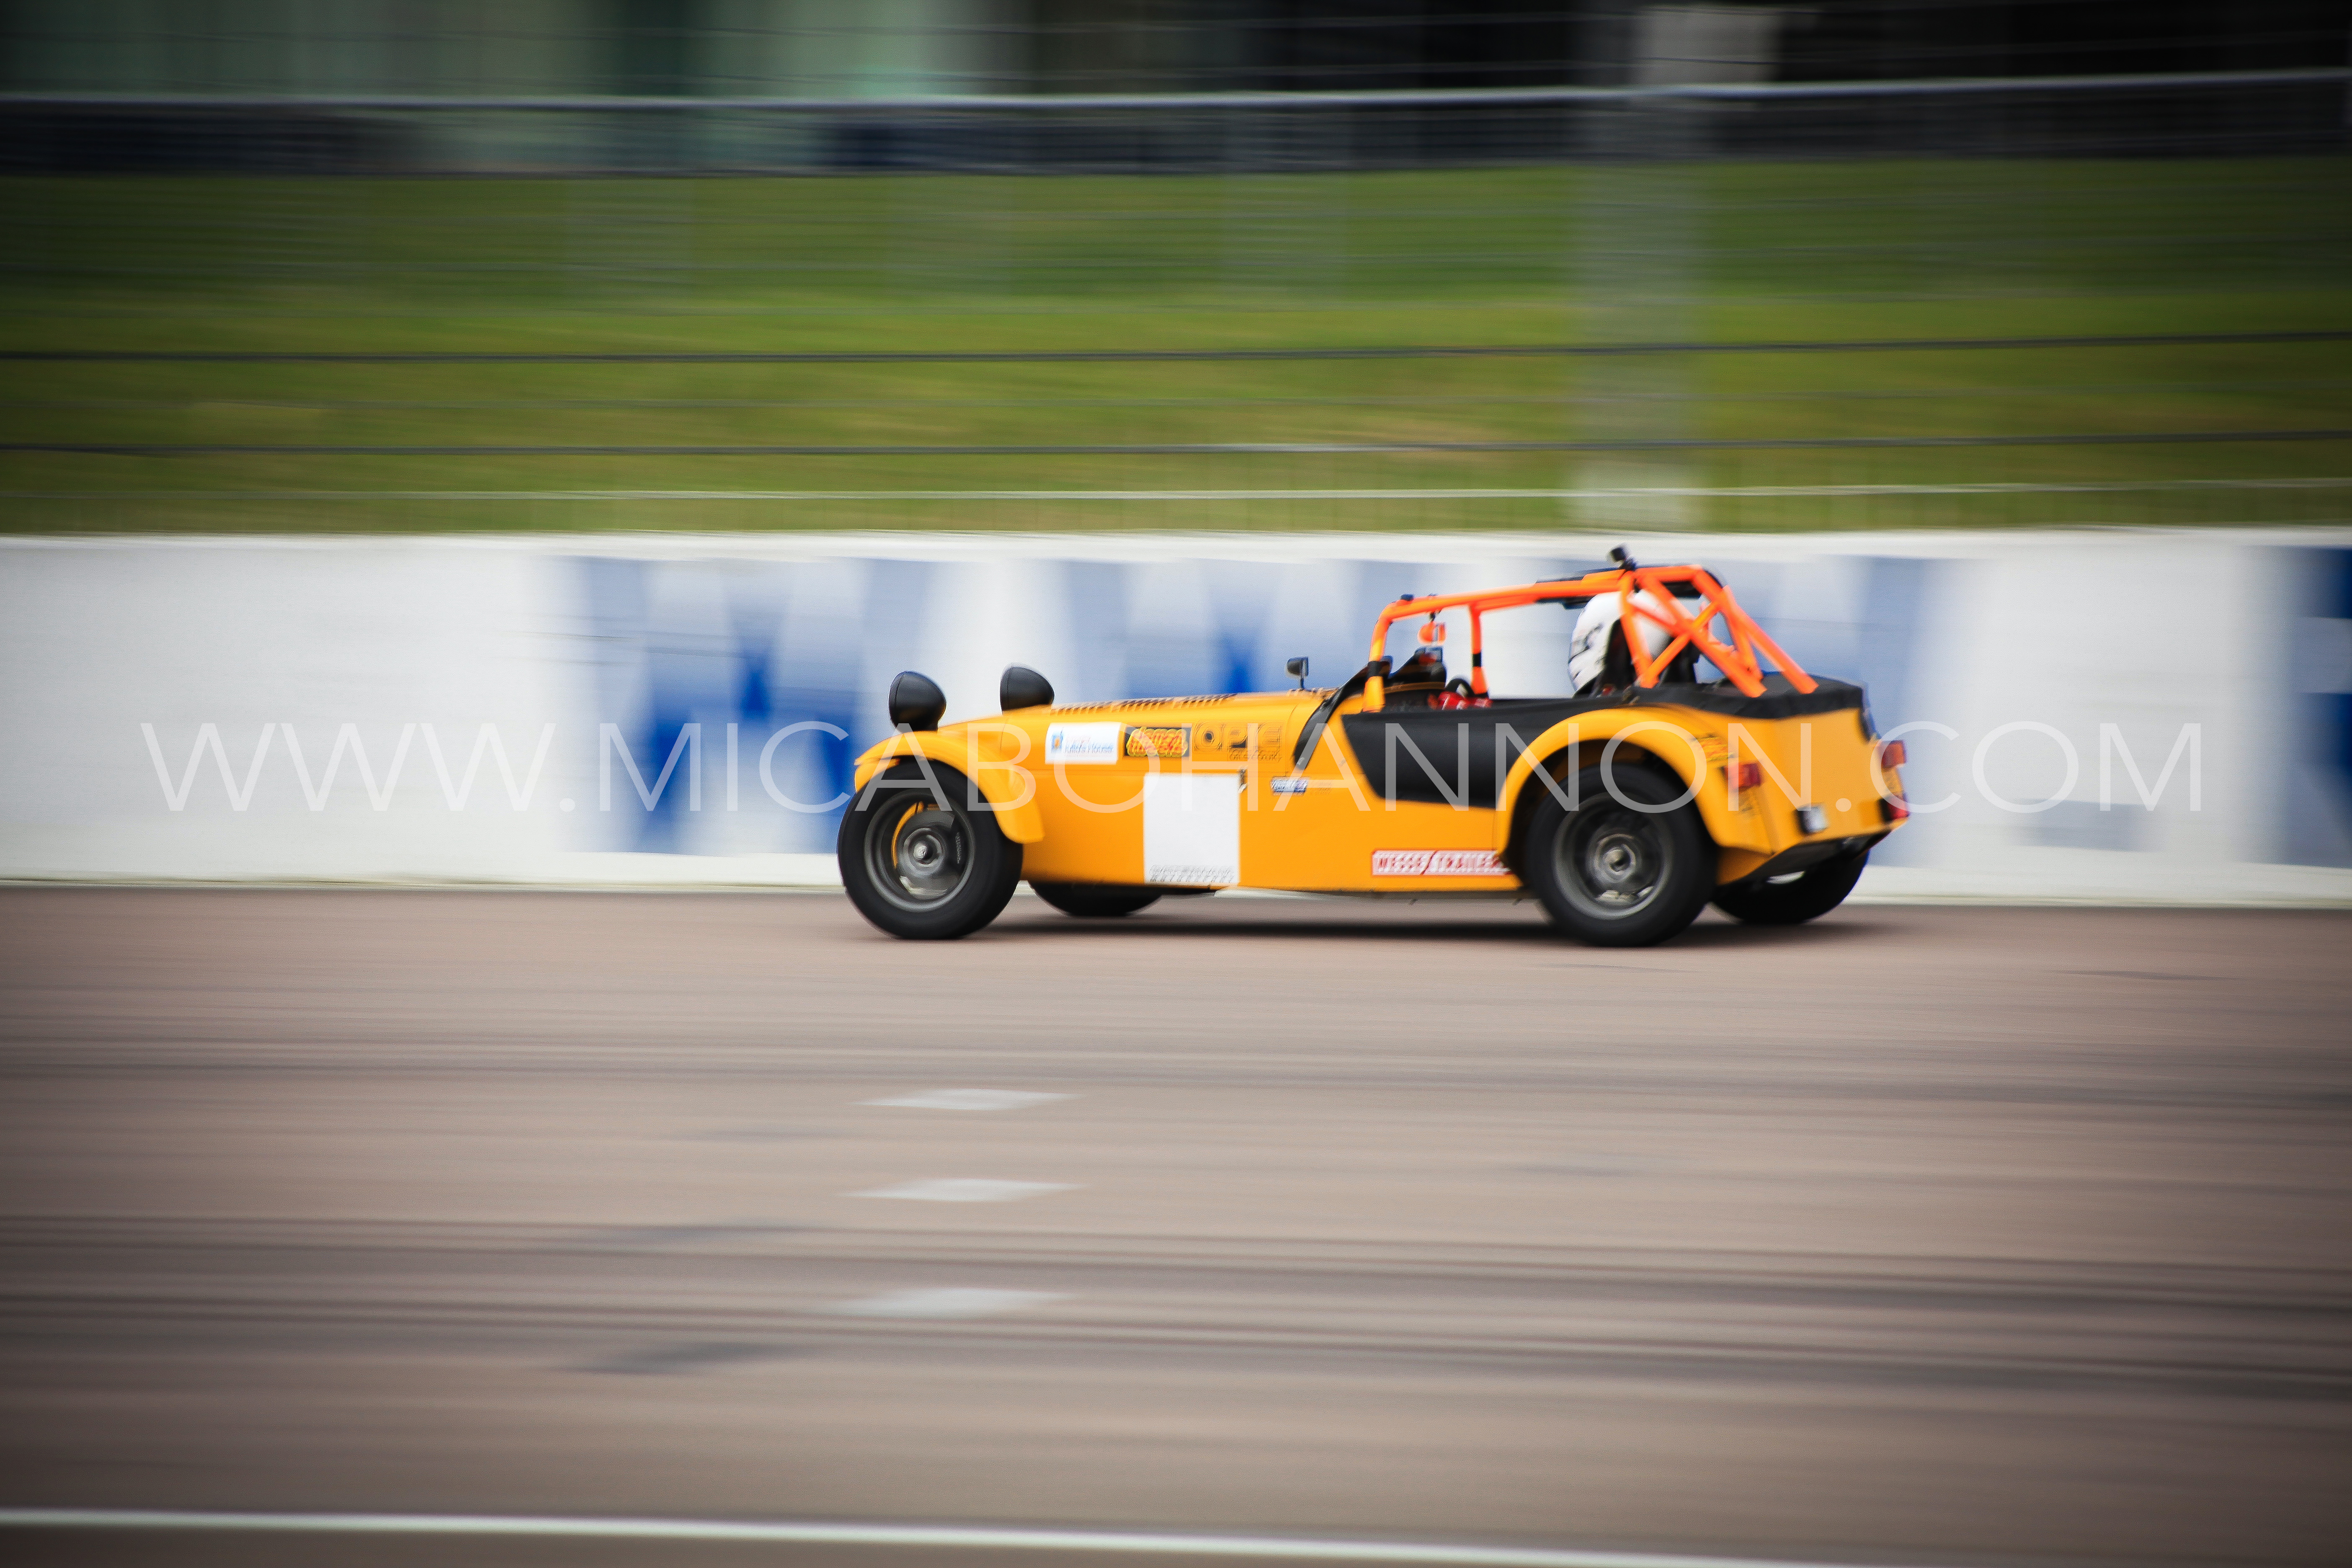 caterham with motion blur